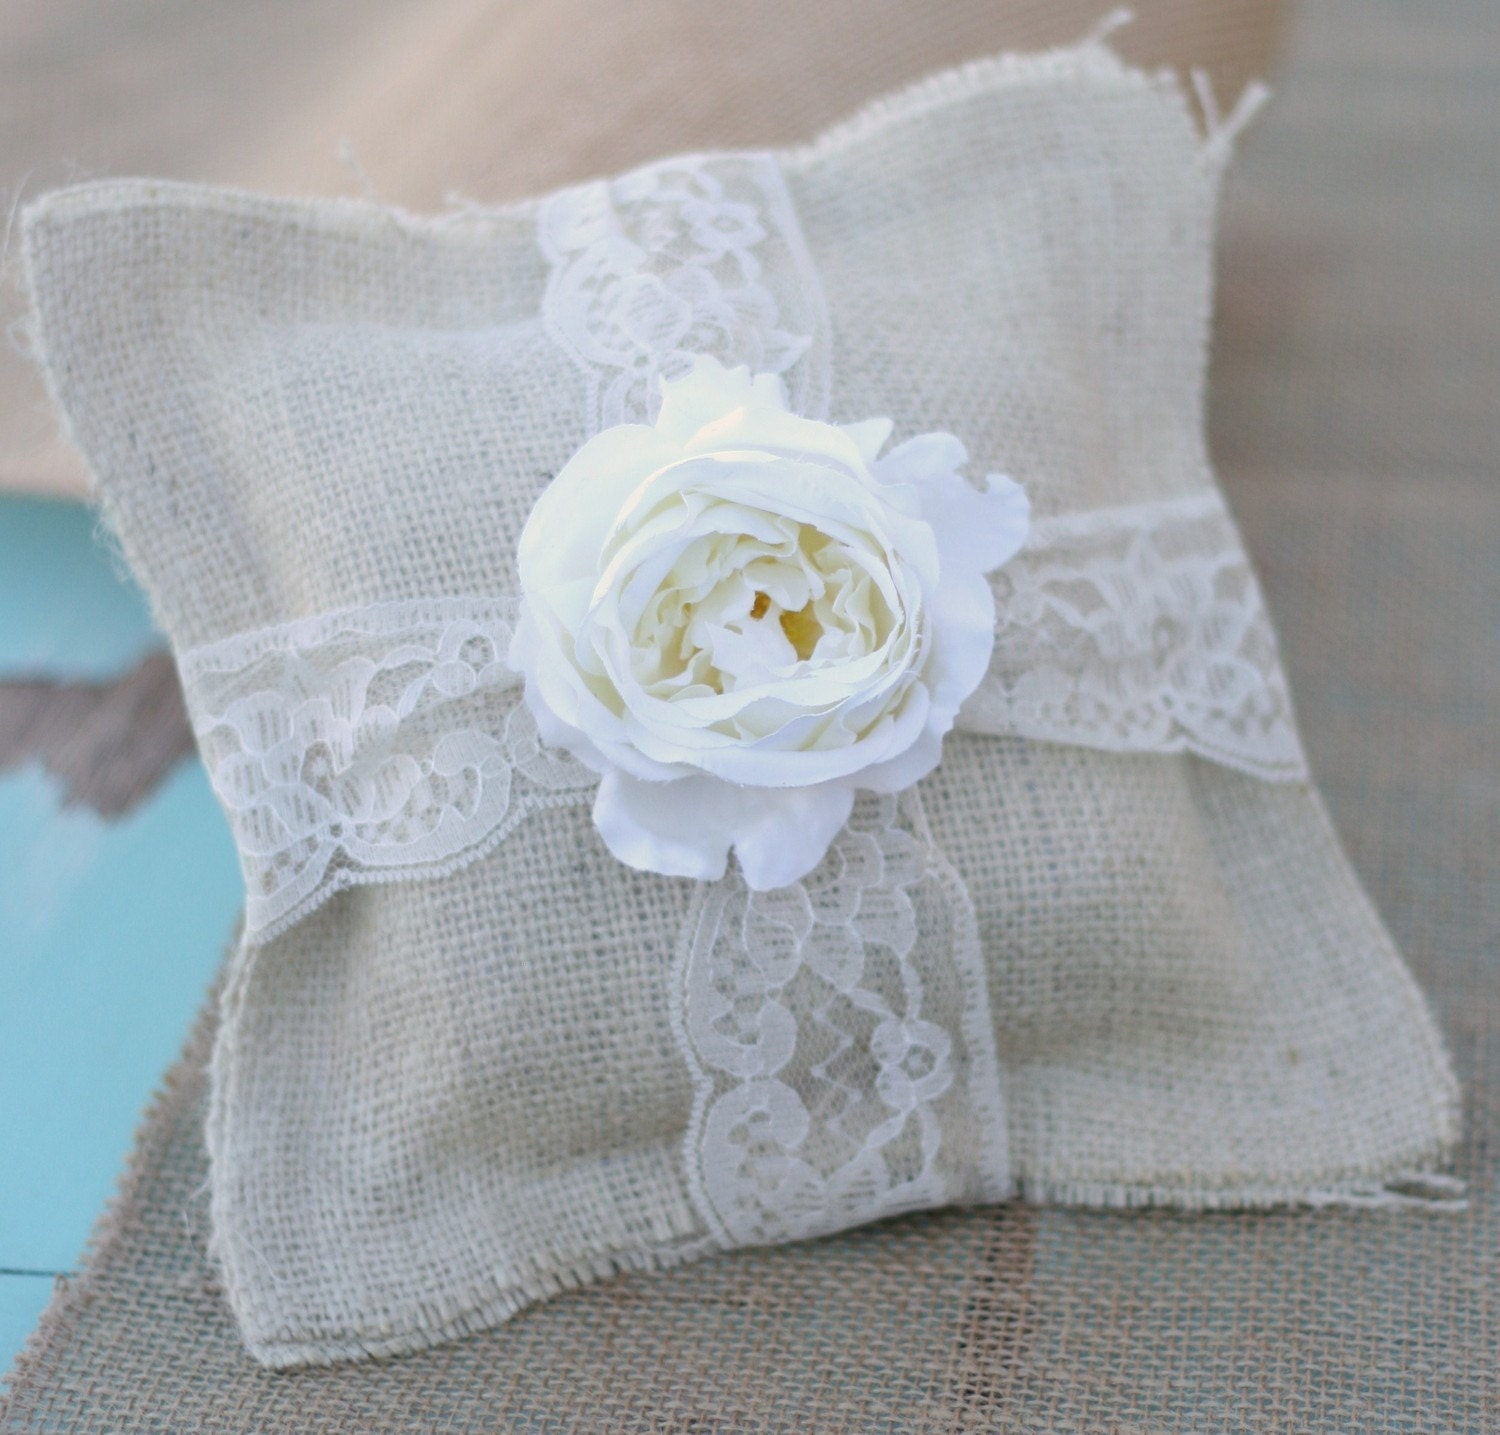 Vintage Style Rustic Spring Summer Woodland Wedding Shabby Chic Burlap Ring Bearer Pillow Antique Rose and Lace Accents